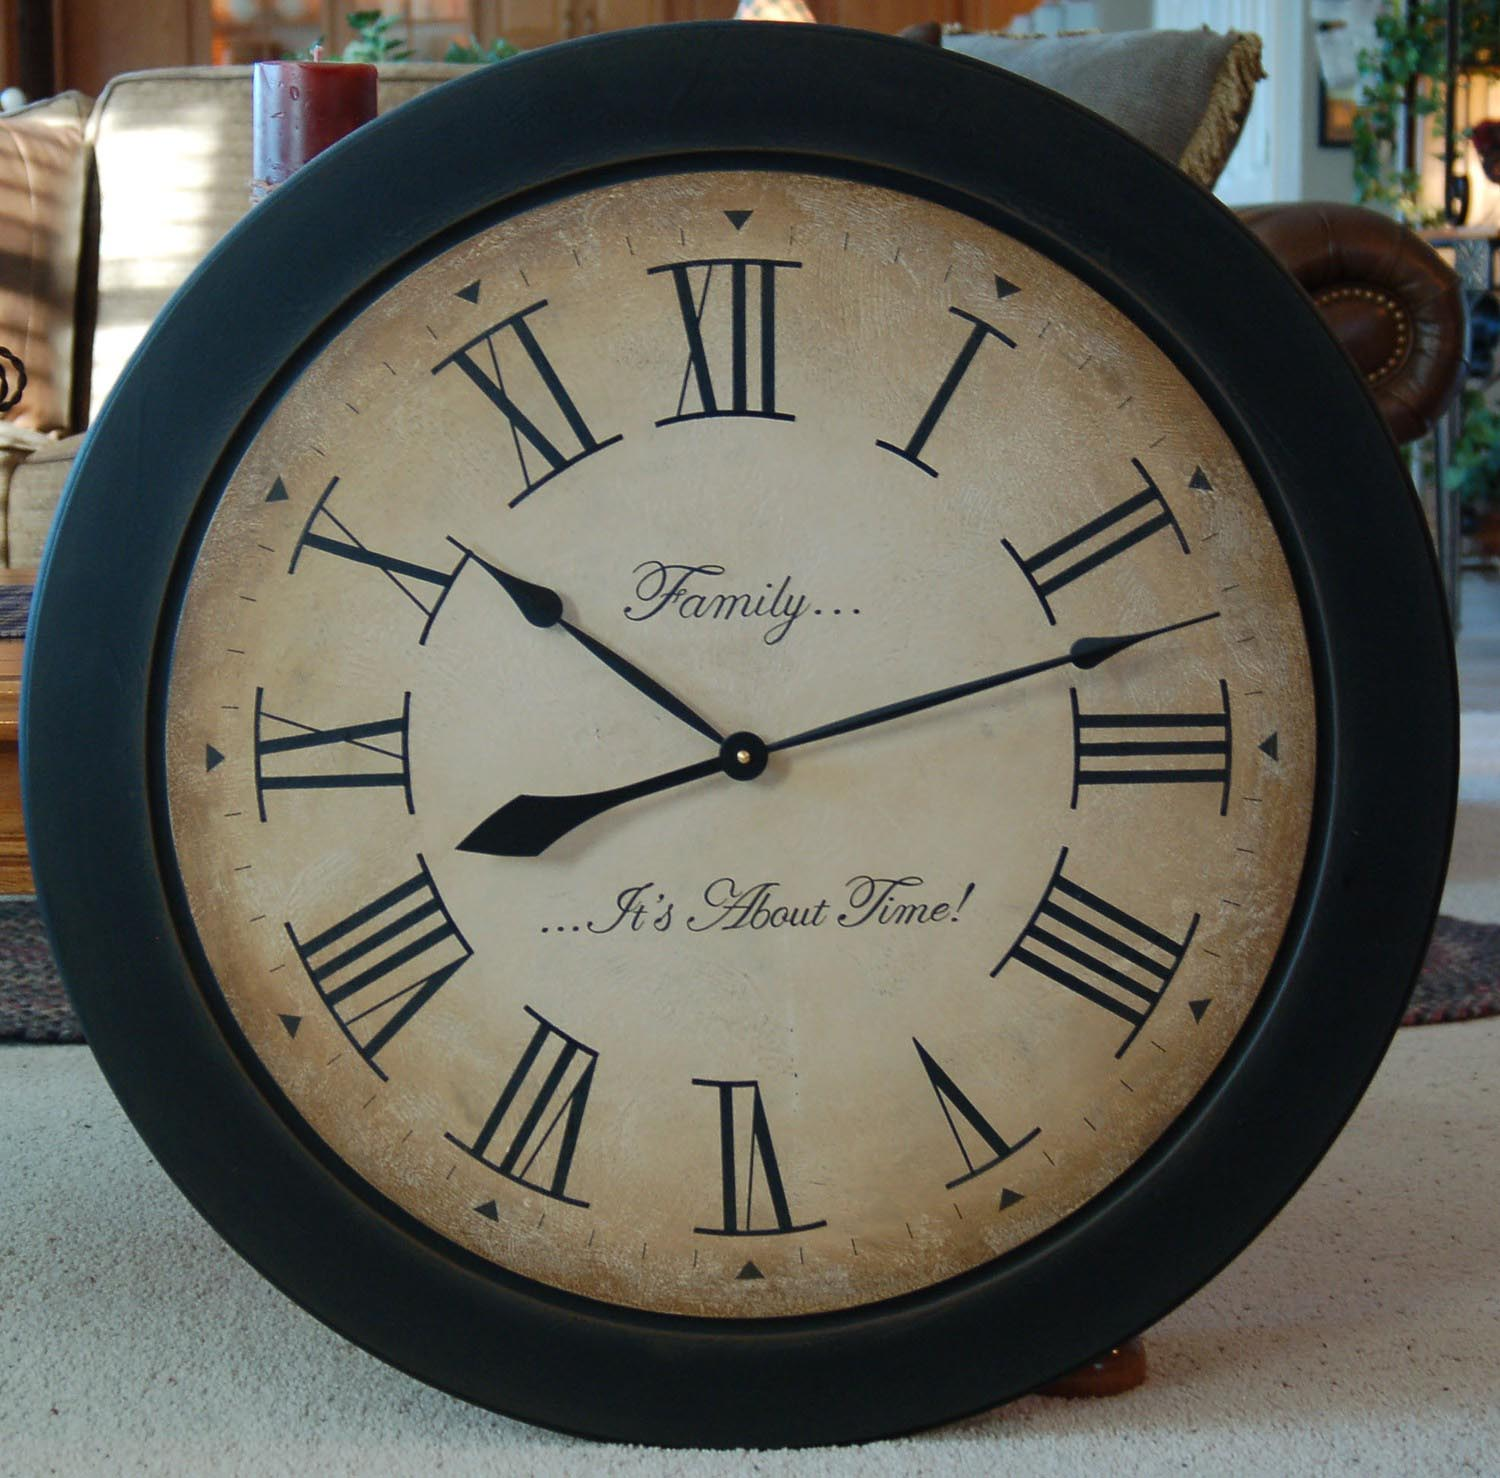 Big Clocks For Wall Big Clocks For Wall Best Decor Things